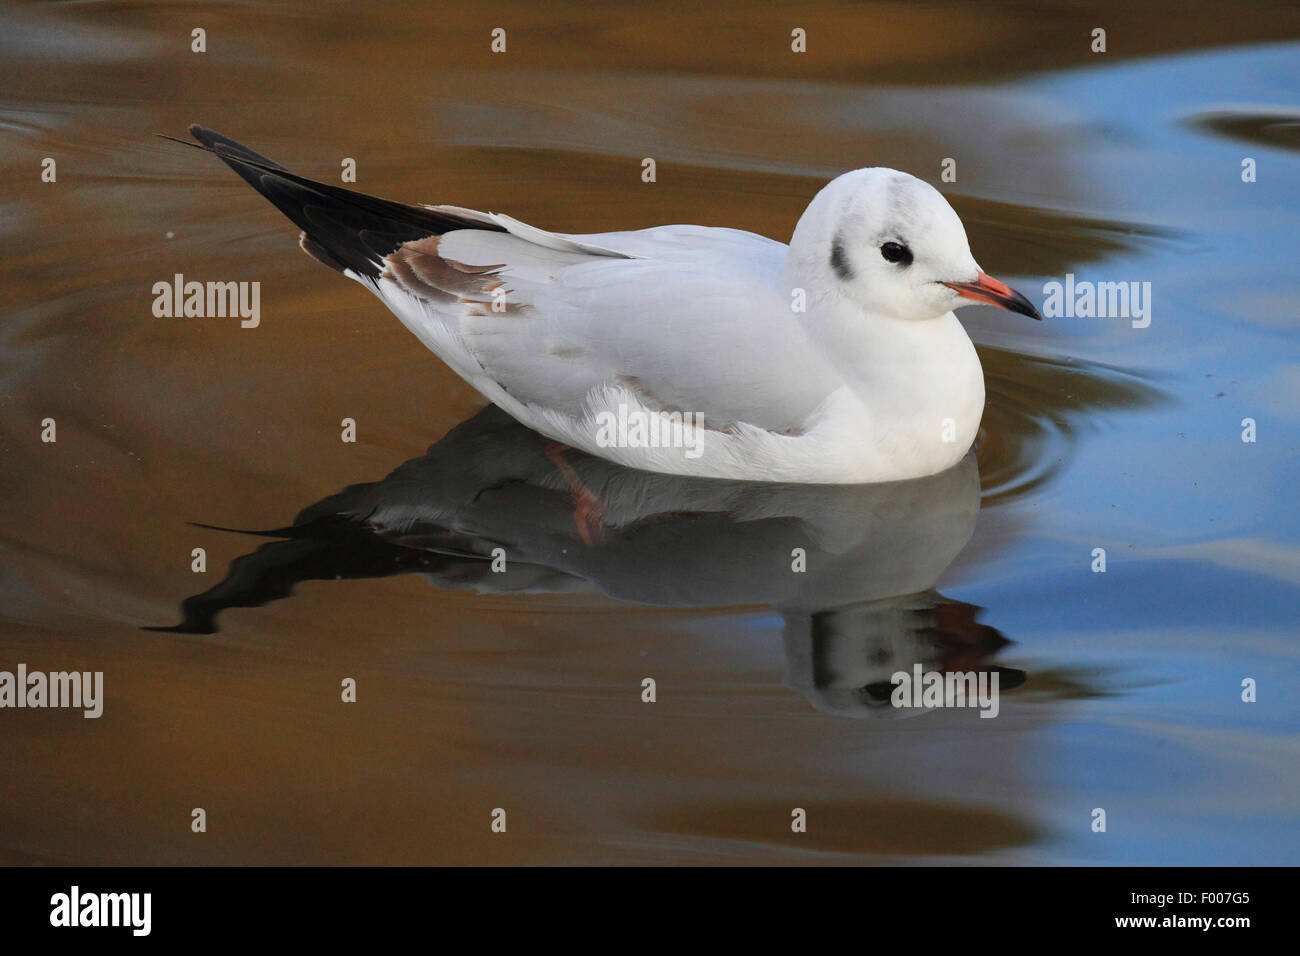 black-headed gull (Larus ridibundus, Chroicocephalus ridibundus), swimming, with mirror image, Germany - Stock Image